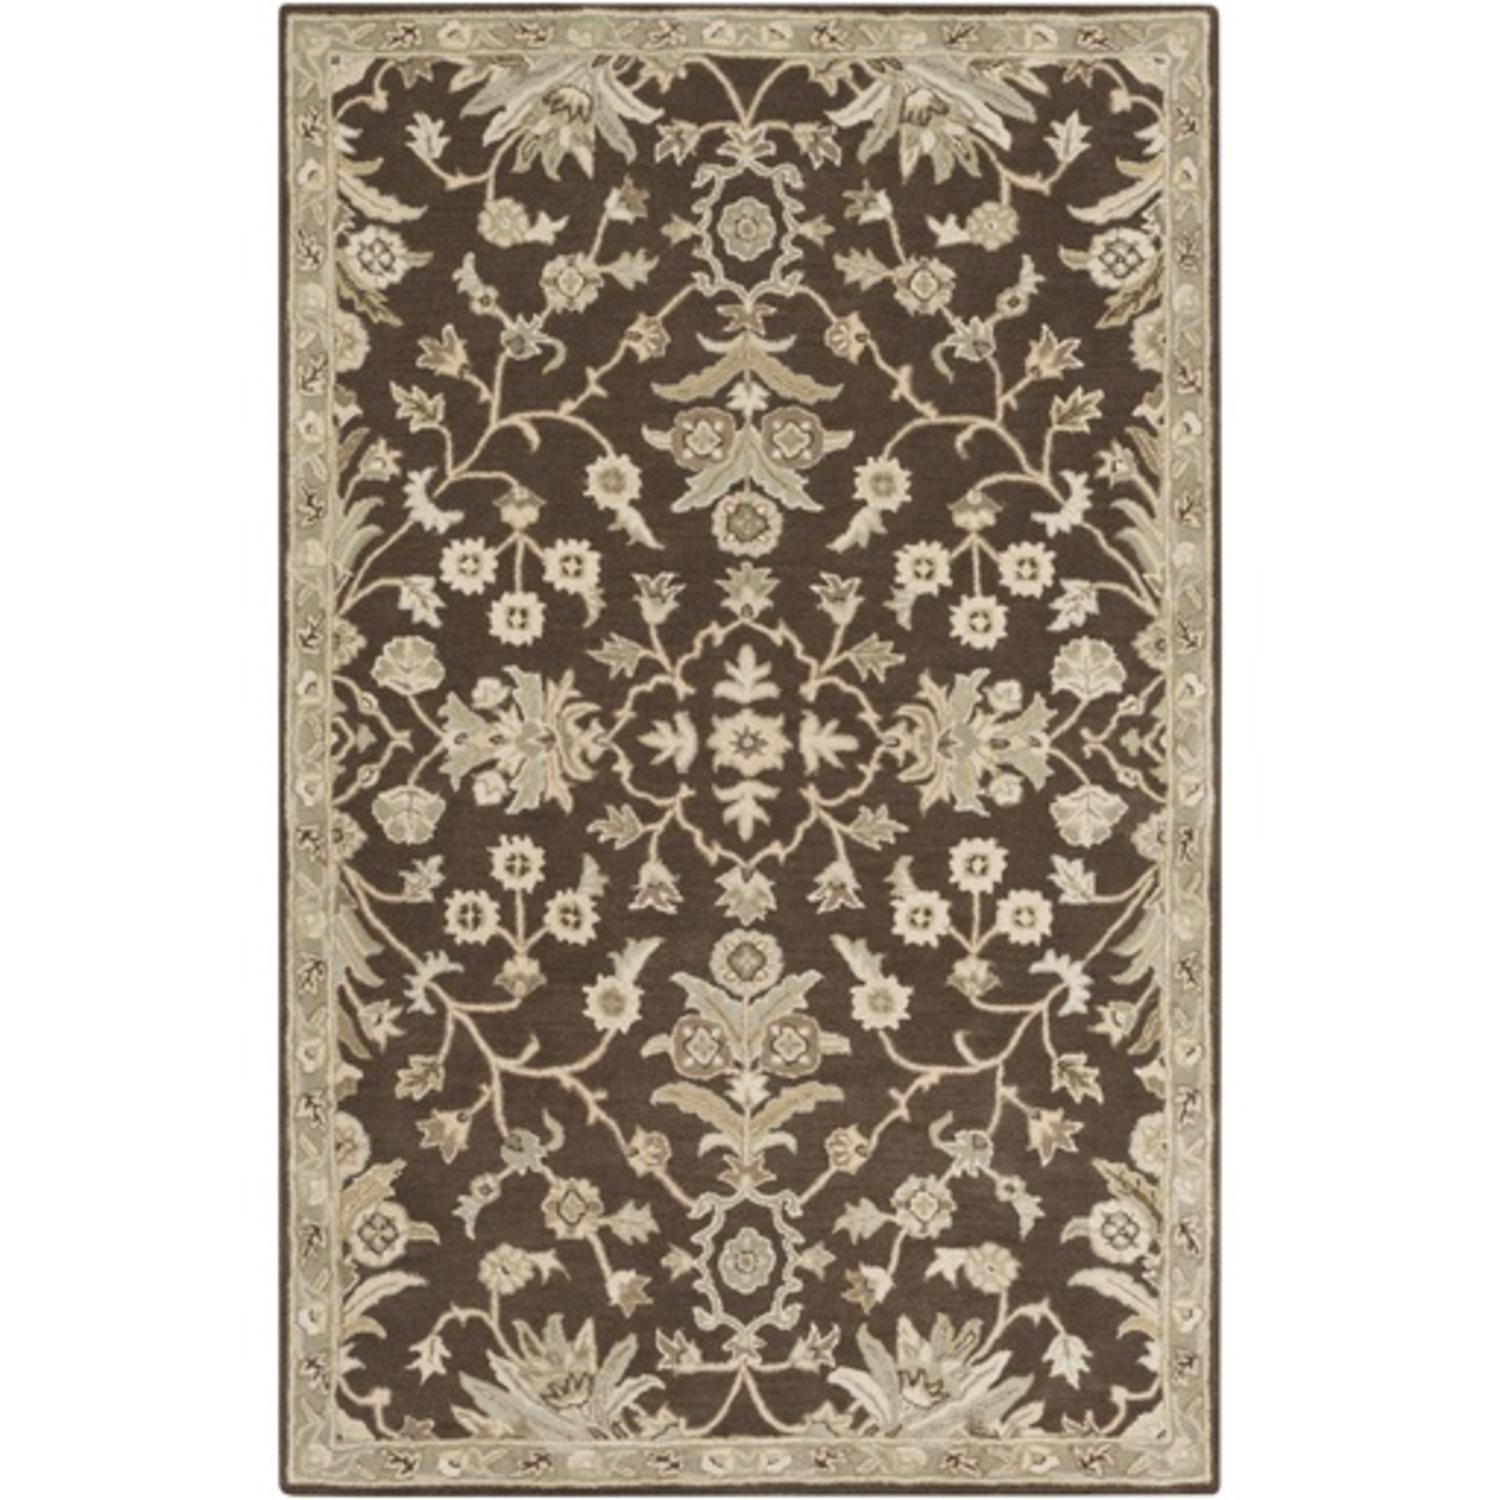 12' x 15' French Elegance Chocolate Brown, Gray and Cream Hand Tufted Wool  Area Throw Rug